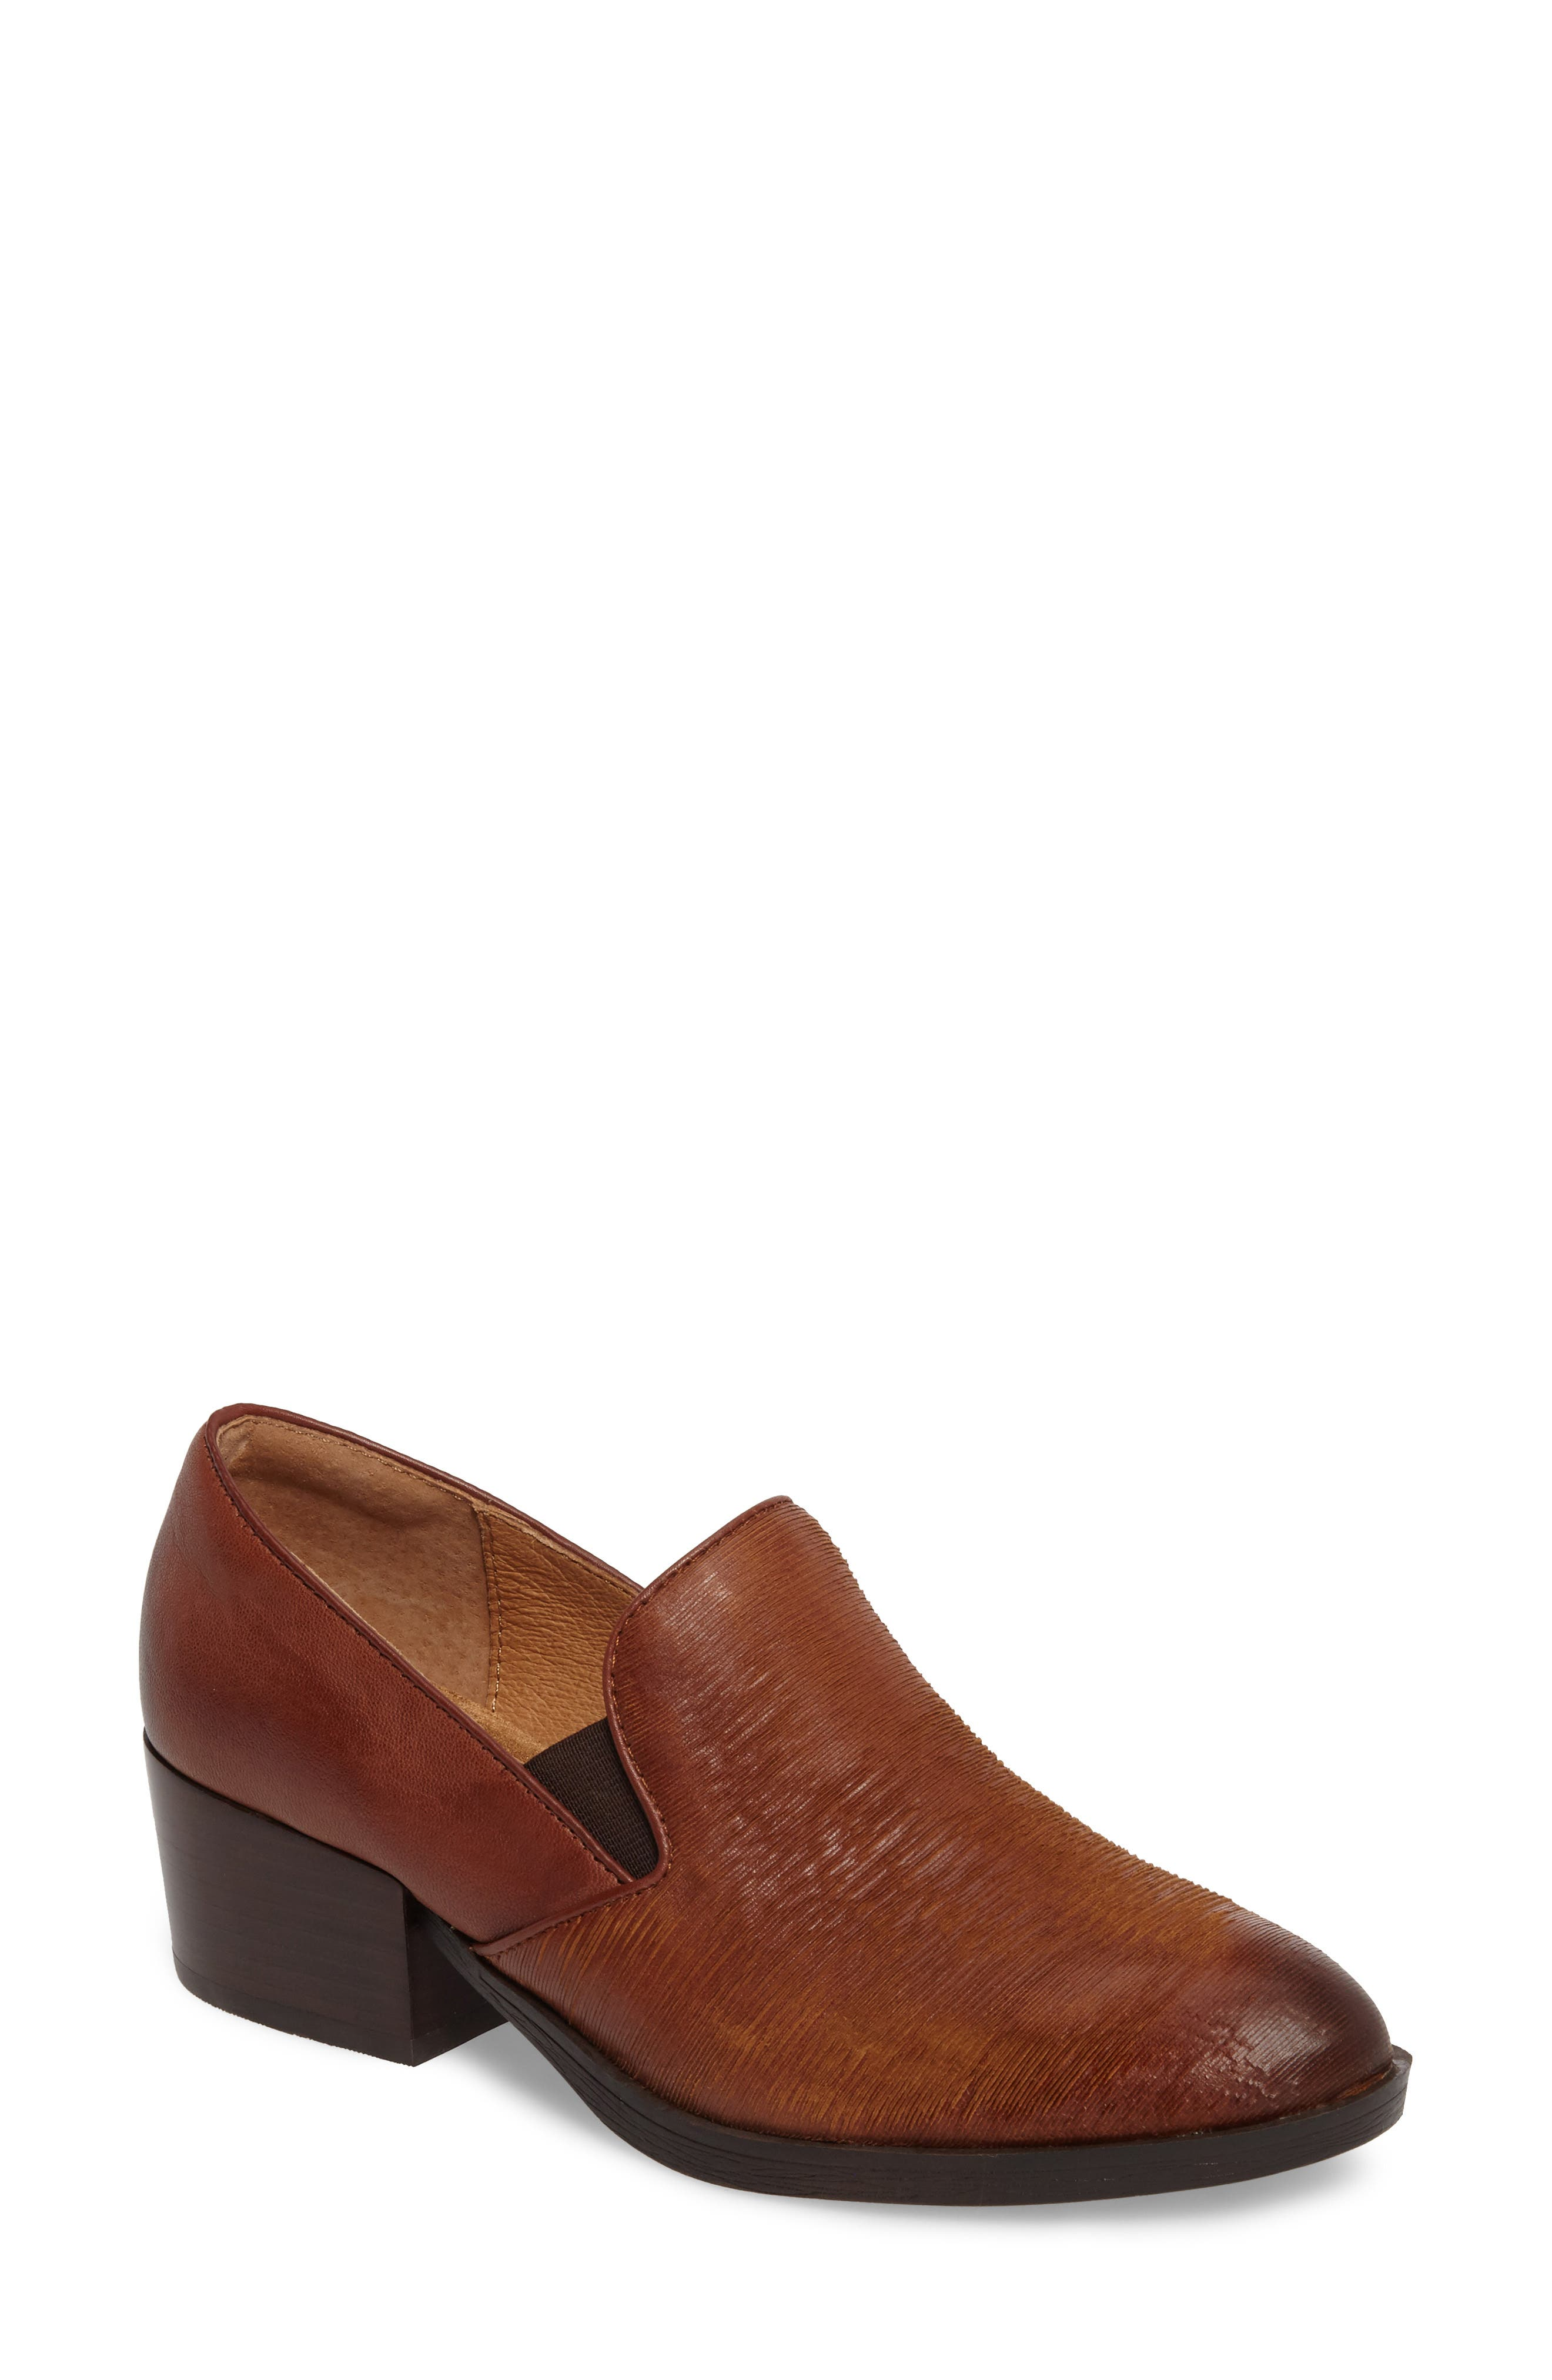 Velina Pump,                         Main,                         color, WHISKEY/ CAFFE LEATHER